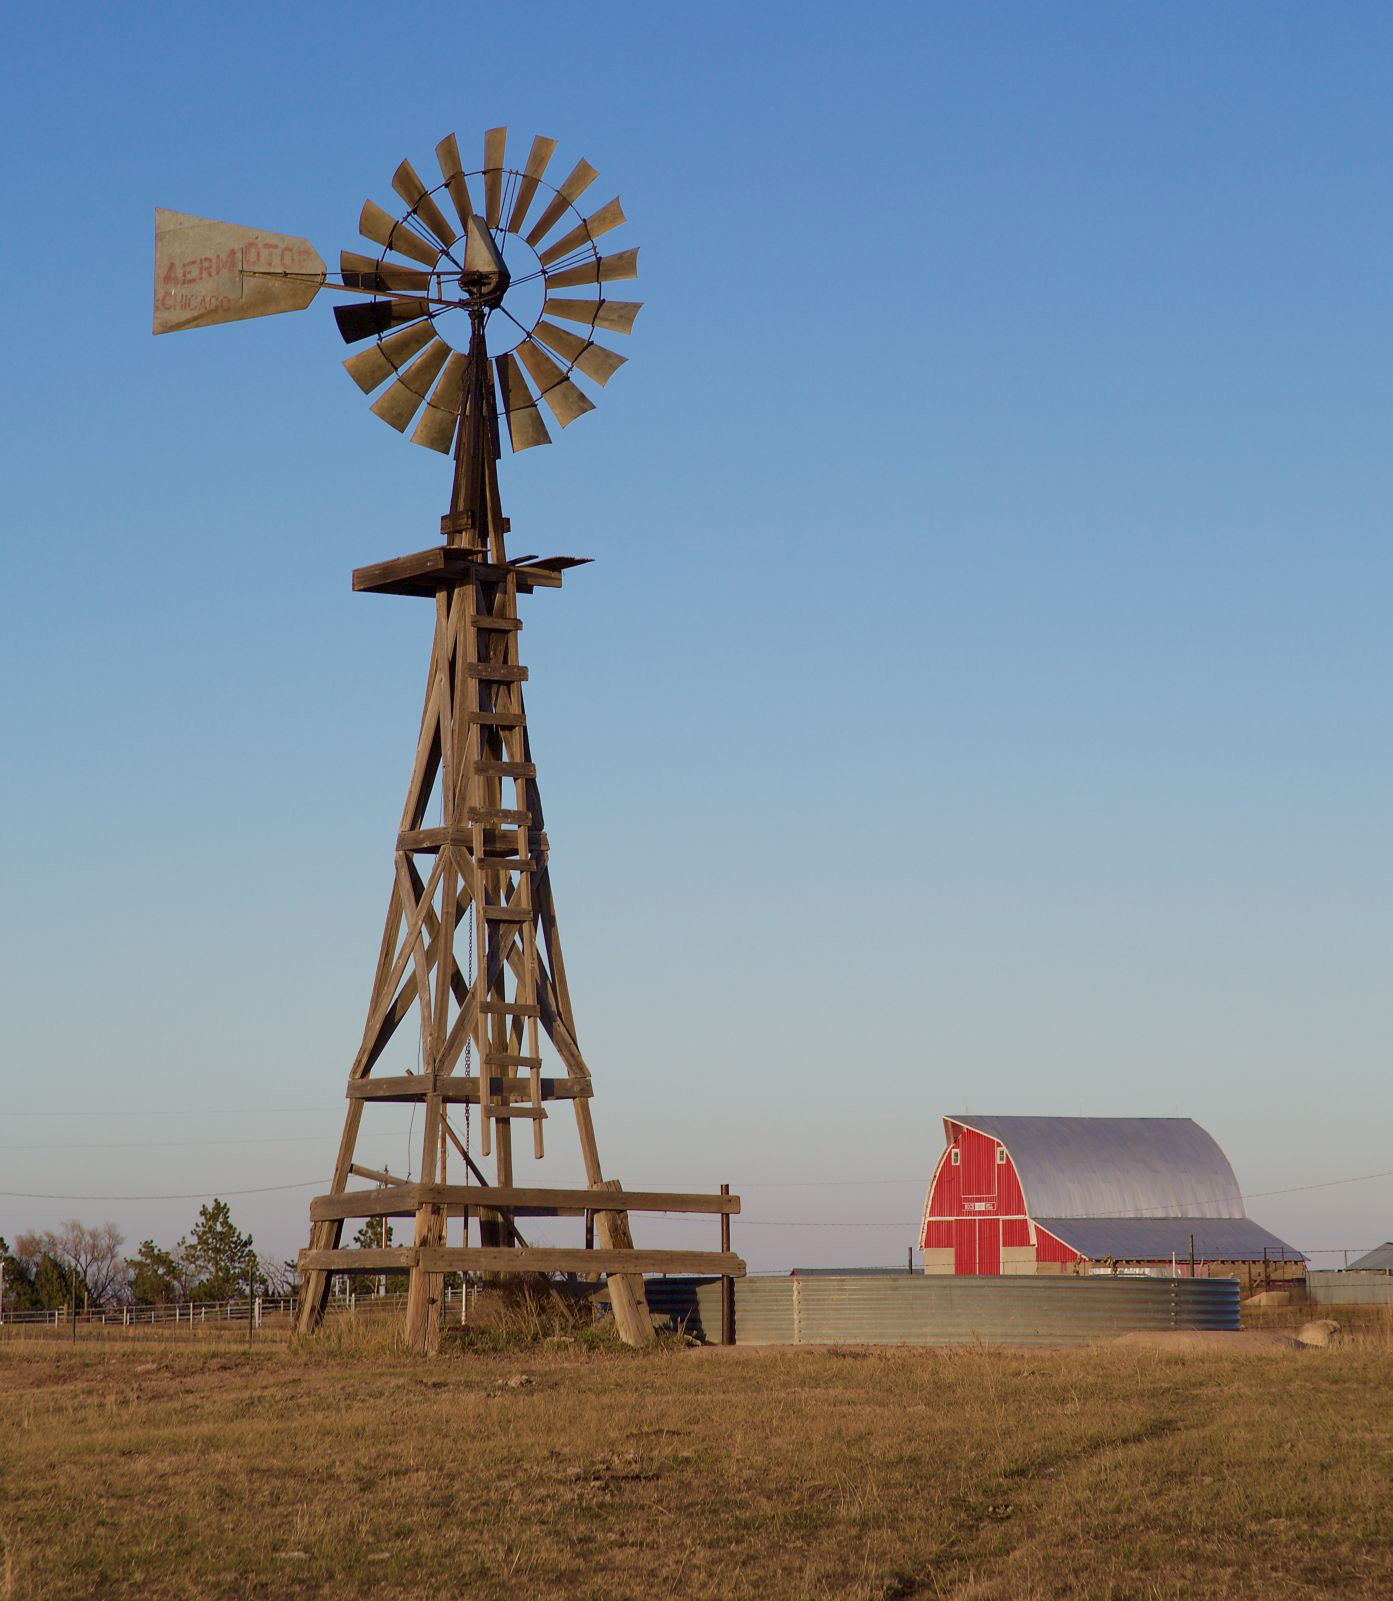 Parcel-2A-windmill-near-improvements.jpg